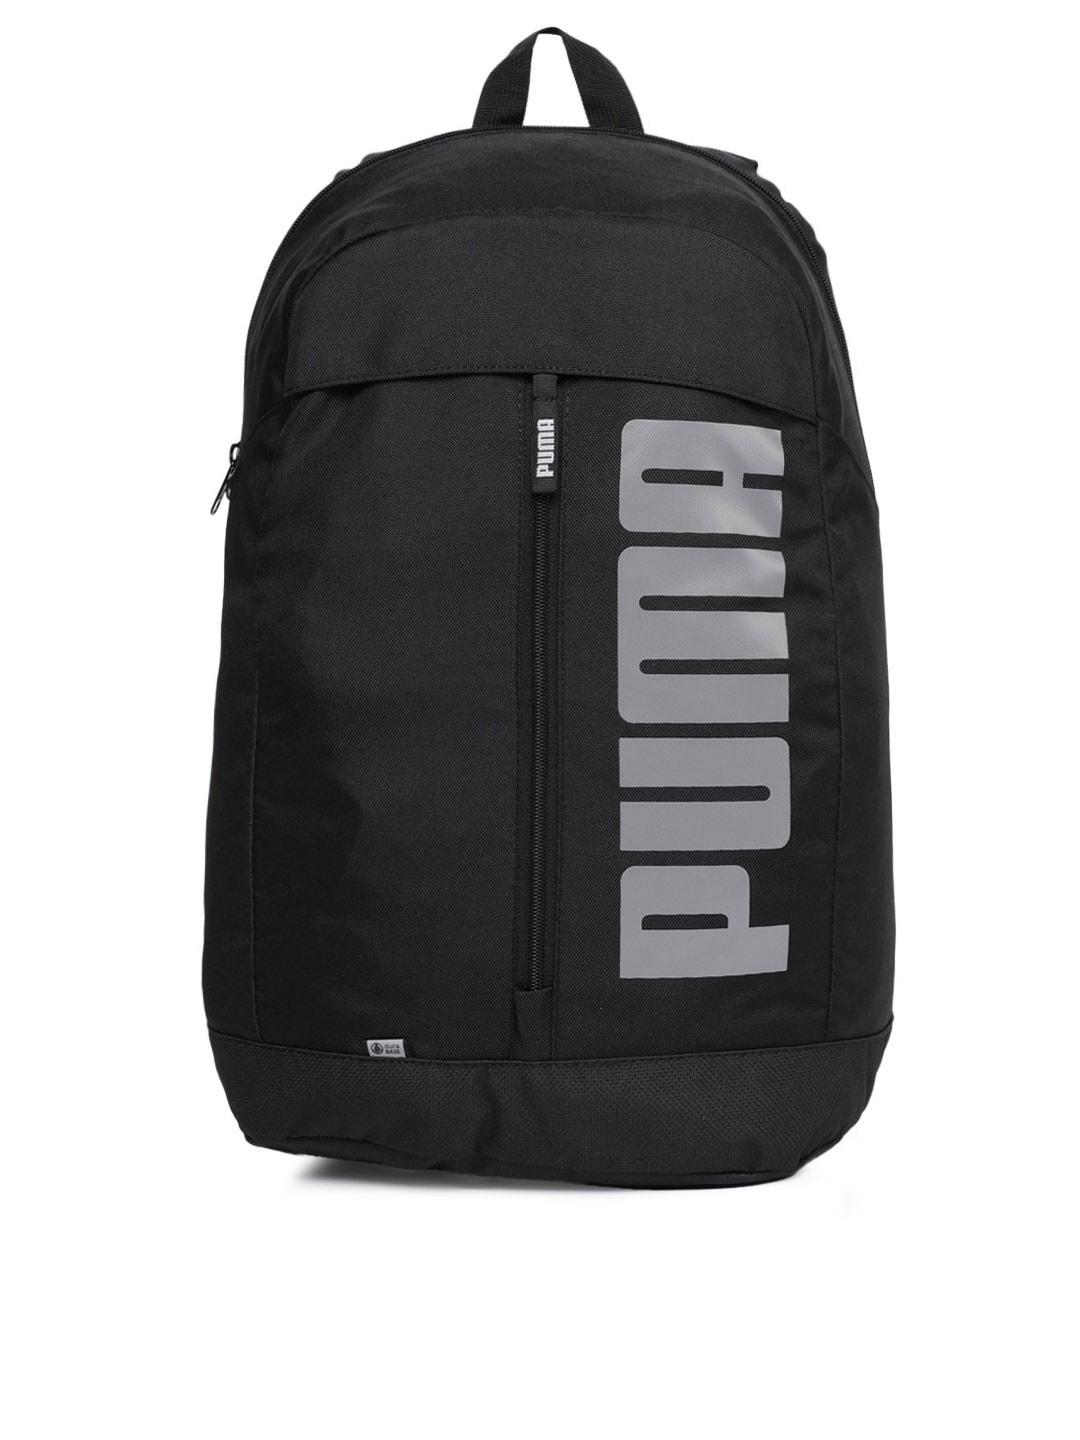 Puma Bag - Buy Puma Bags Online in India  fb5327537372c